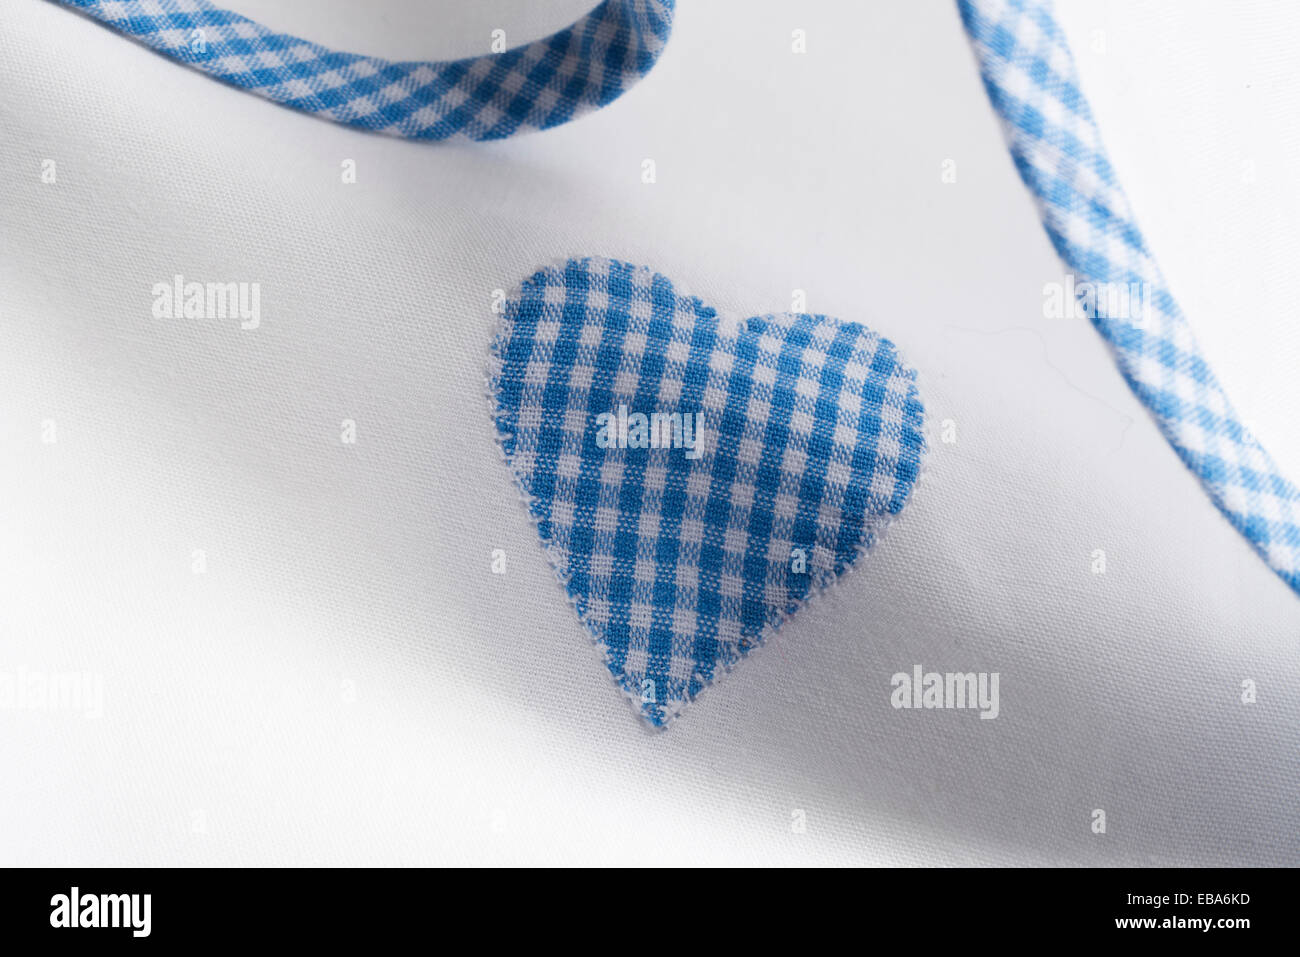 Gingham appliqué hearts on white cotton sheet material stock photo